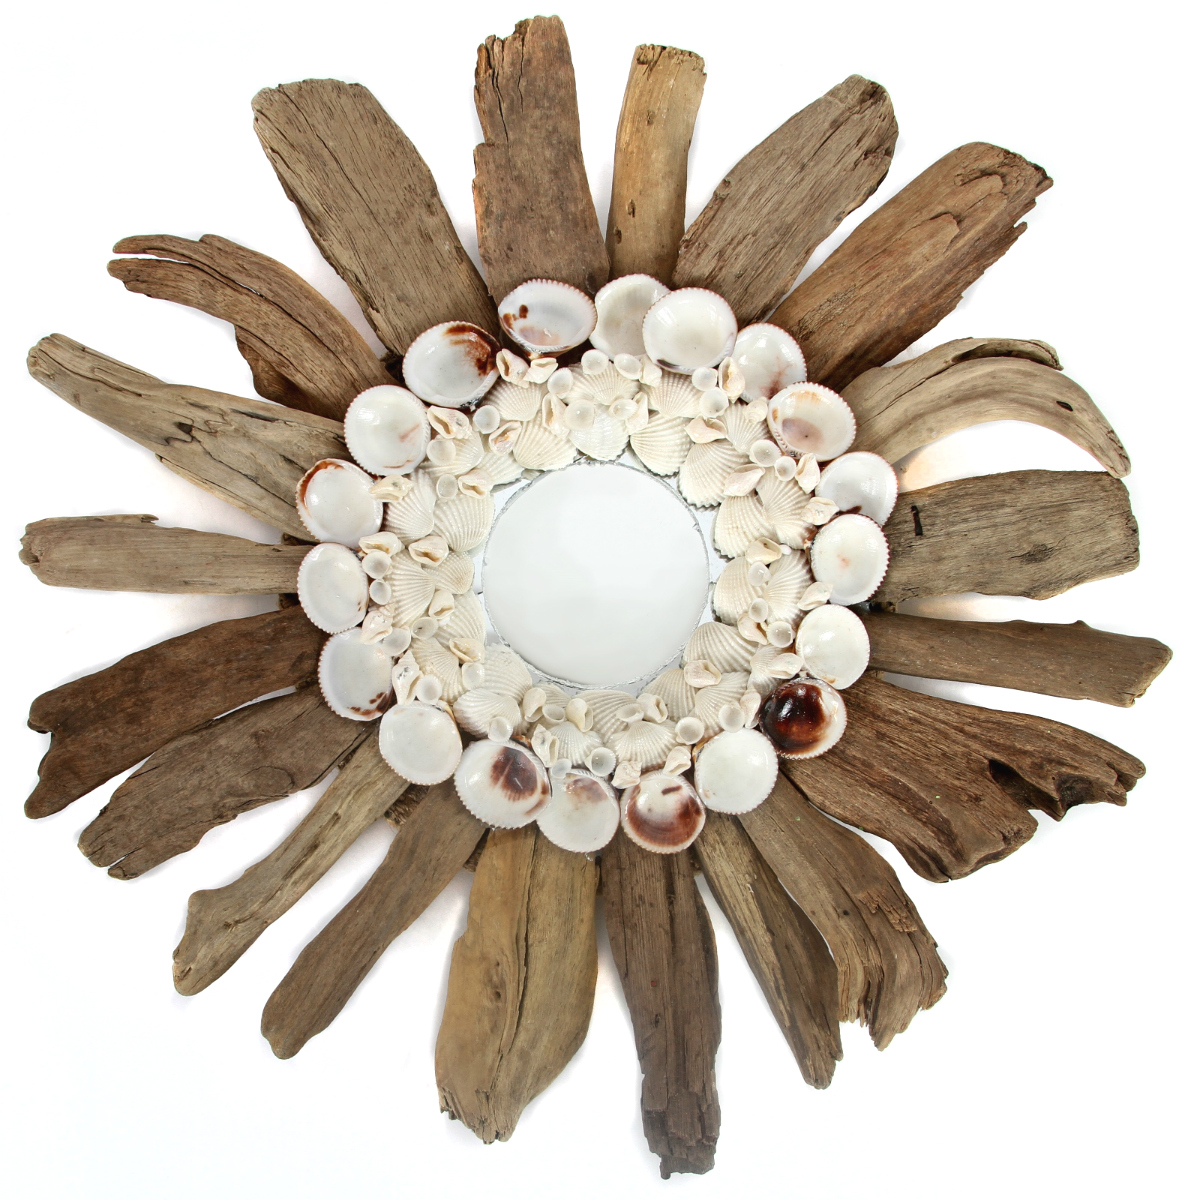 Natural Driftwood and Sea Shells 15 Inch Mirror Wall Decor